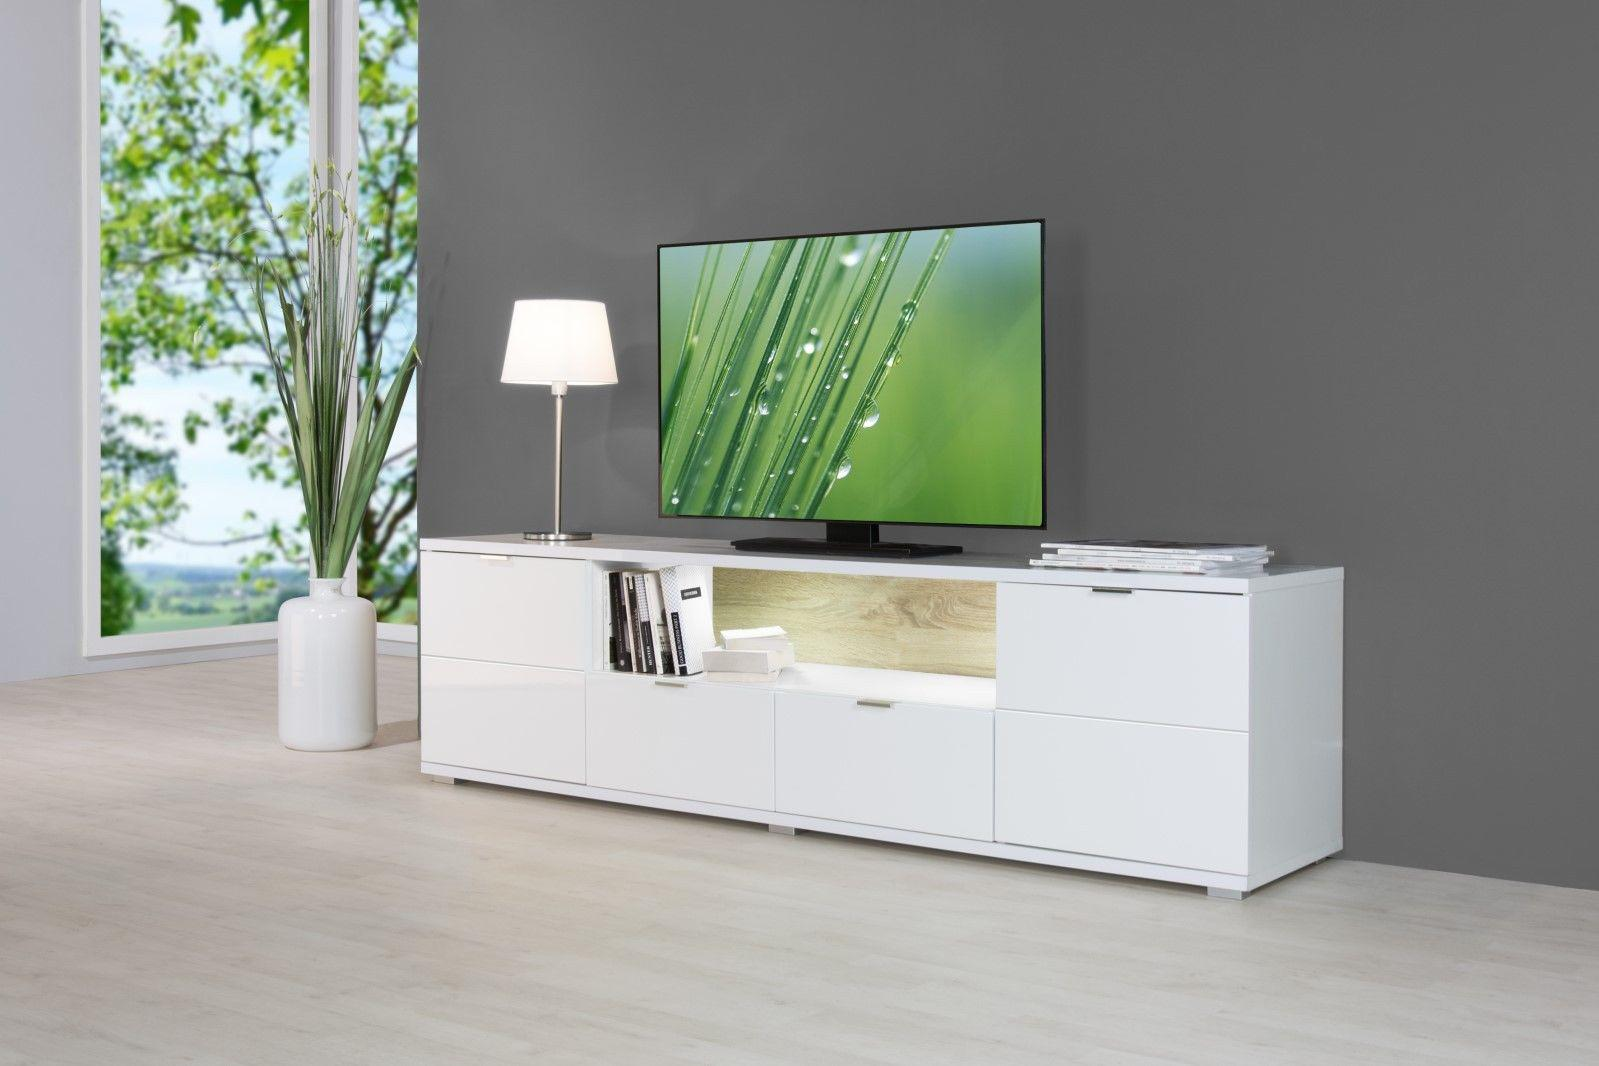 lowboard creme hochglanz tv wand weiss hochglanz wohnwand. Black Bedroom Furniture Sets. Home Design Ideas